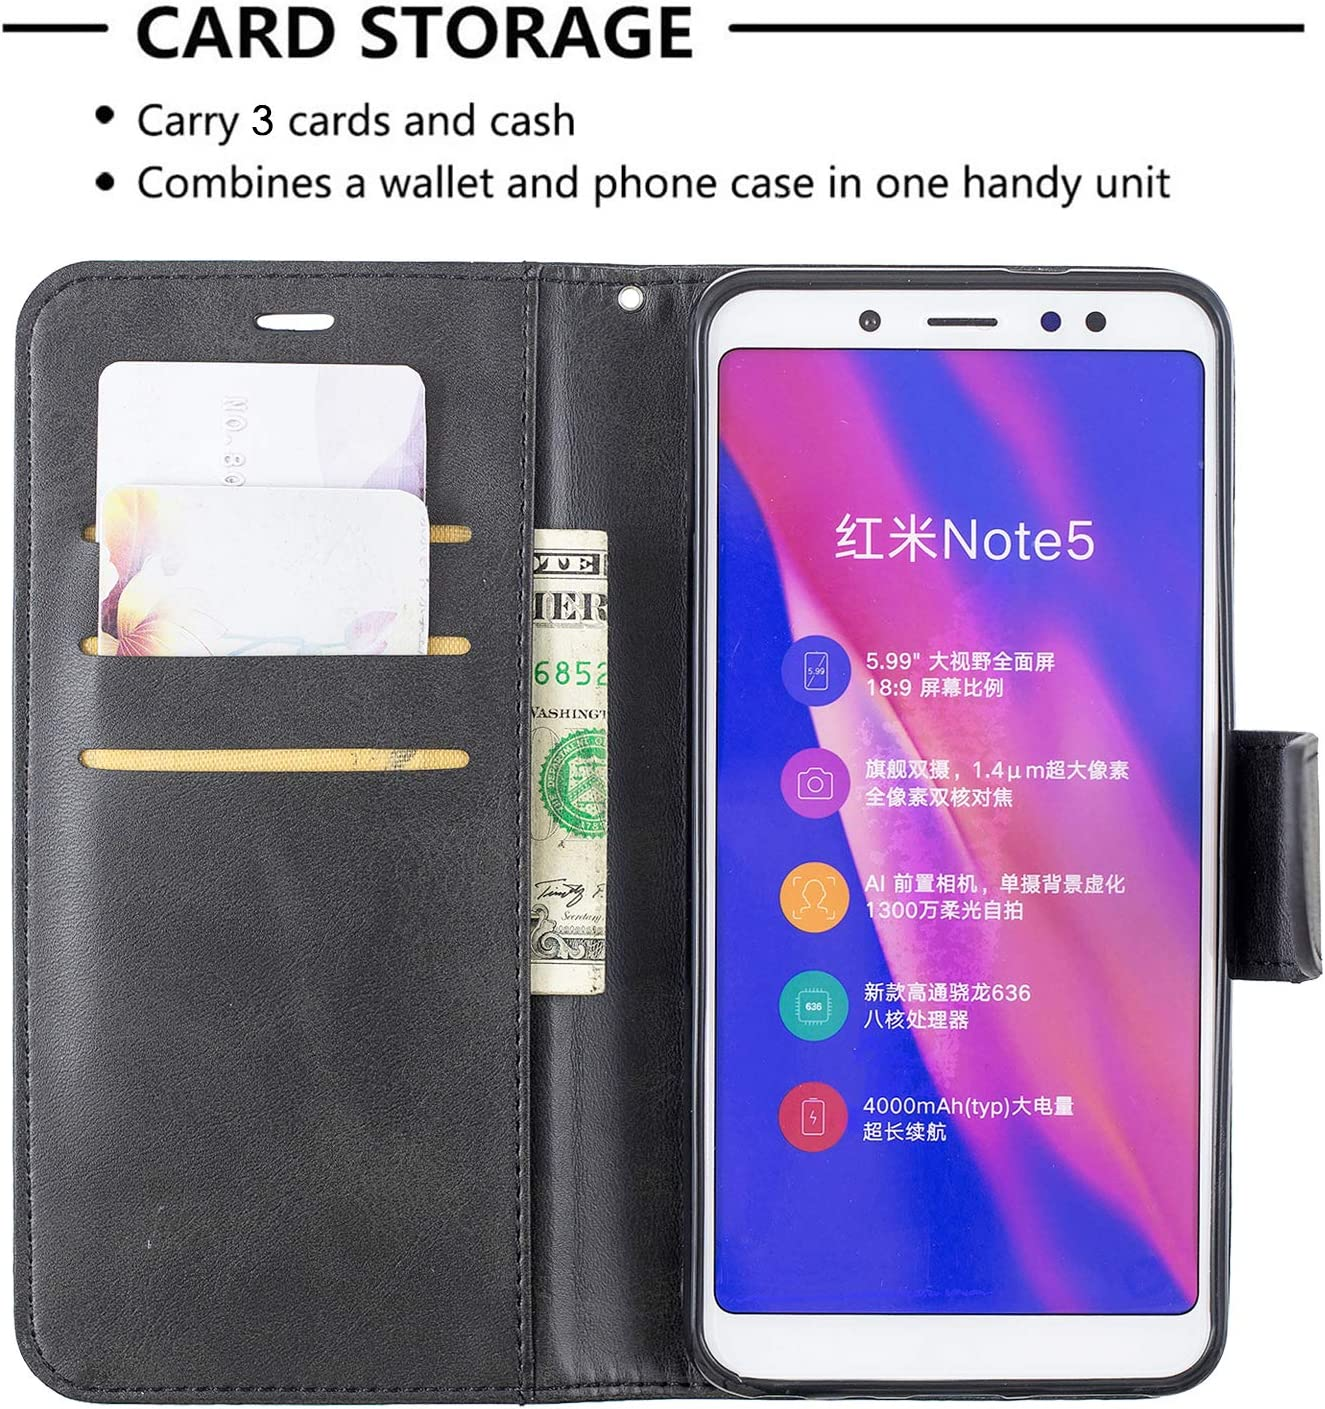 LOBFE150655 Black Lomogo Xiaomi Redmi Note 5 Pro Case Leather Wallet Case with Kickstand Card Holder Shockproof Flip Case Cover for Xiaomi Redmi Note5 Pro